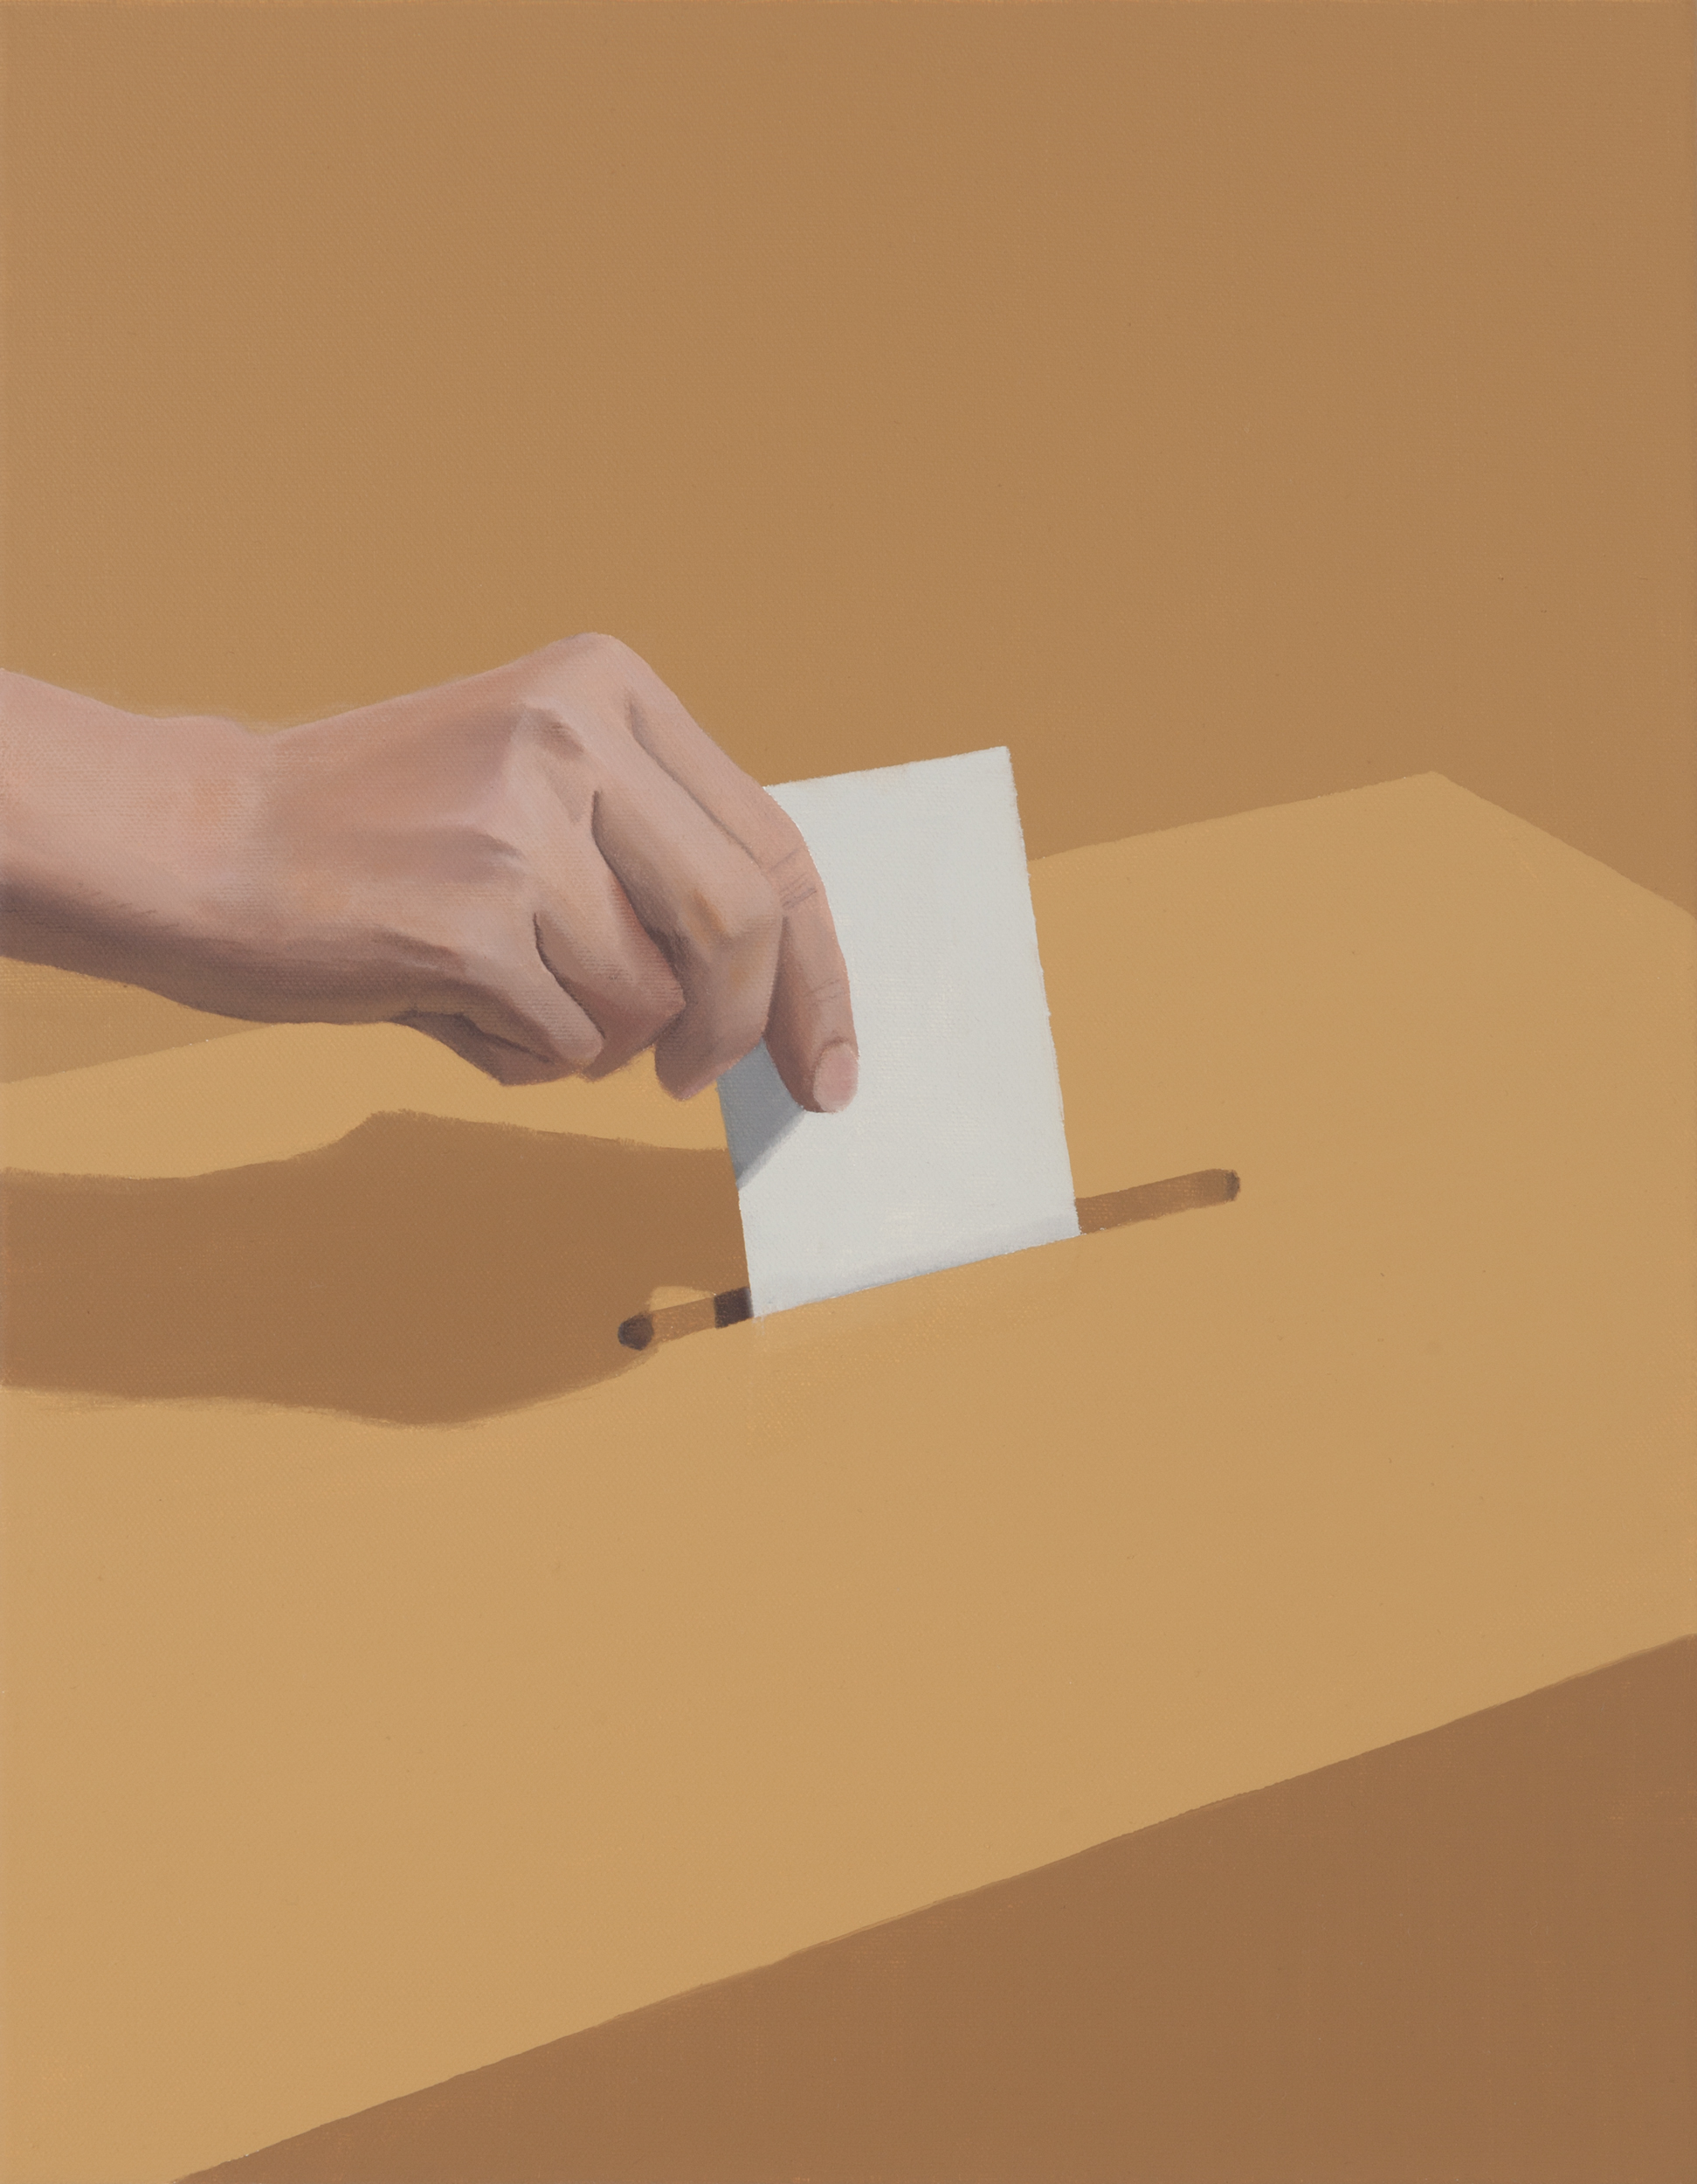 Kansanvalta - Democracy-  2020 - oil on canvas - 45x35cm